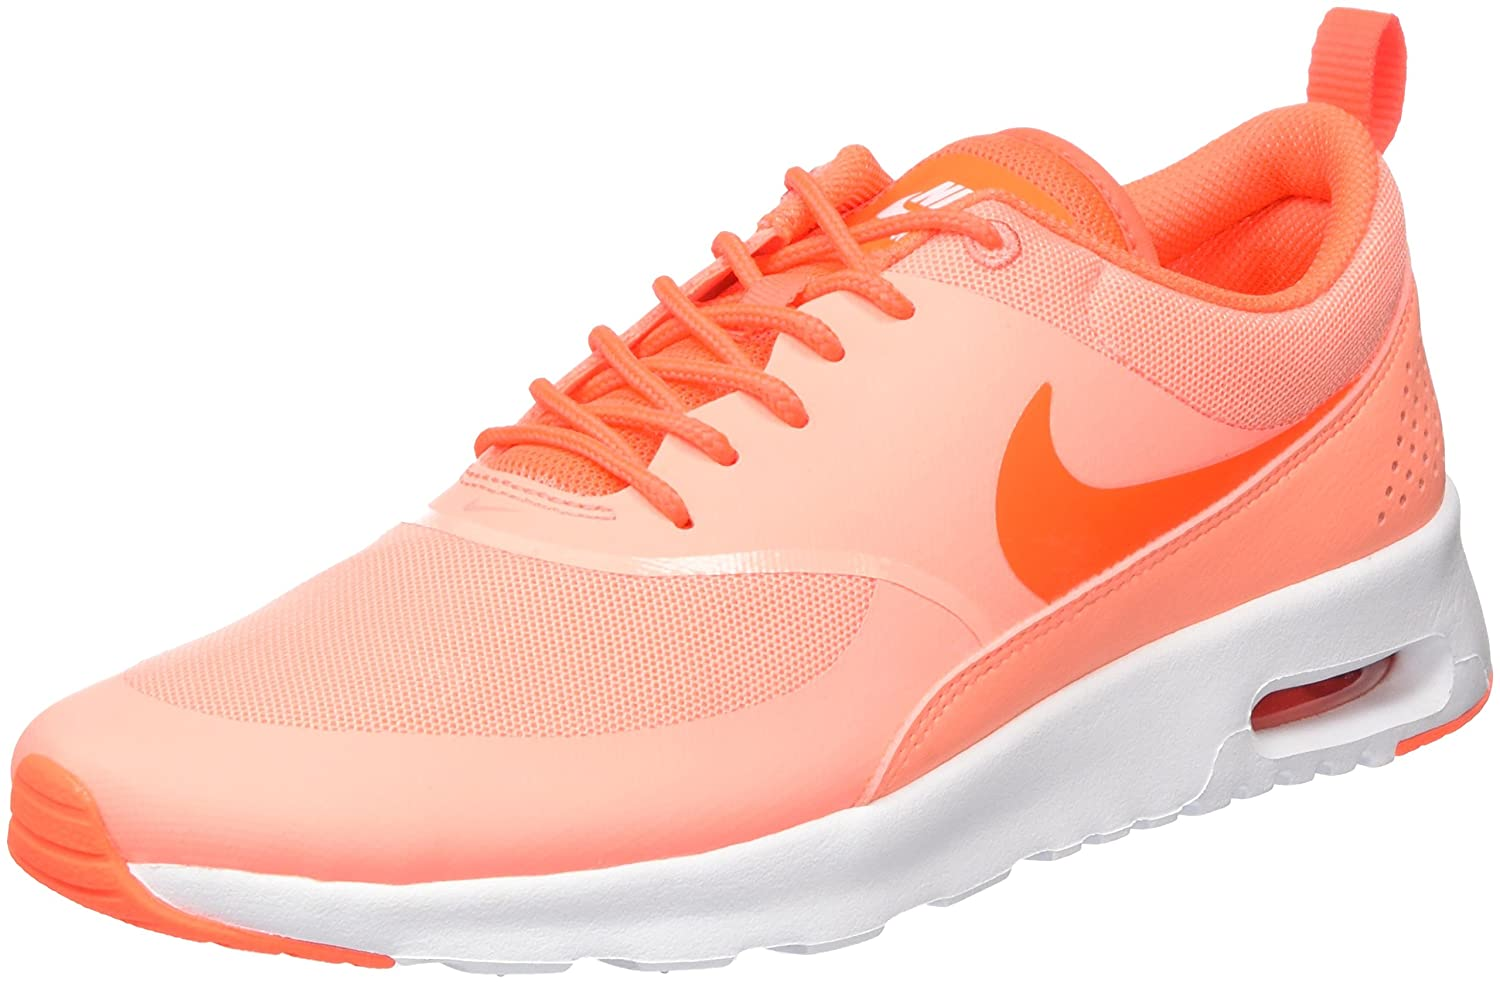 new styles 5a918 6d253 Nike Women s Air Max Thea Running Shoes  Amazon.co.uk  Shoes   Bags